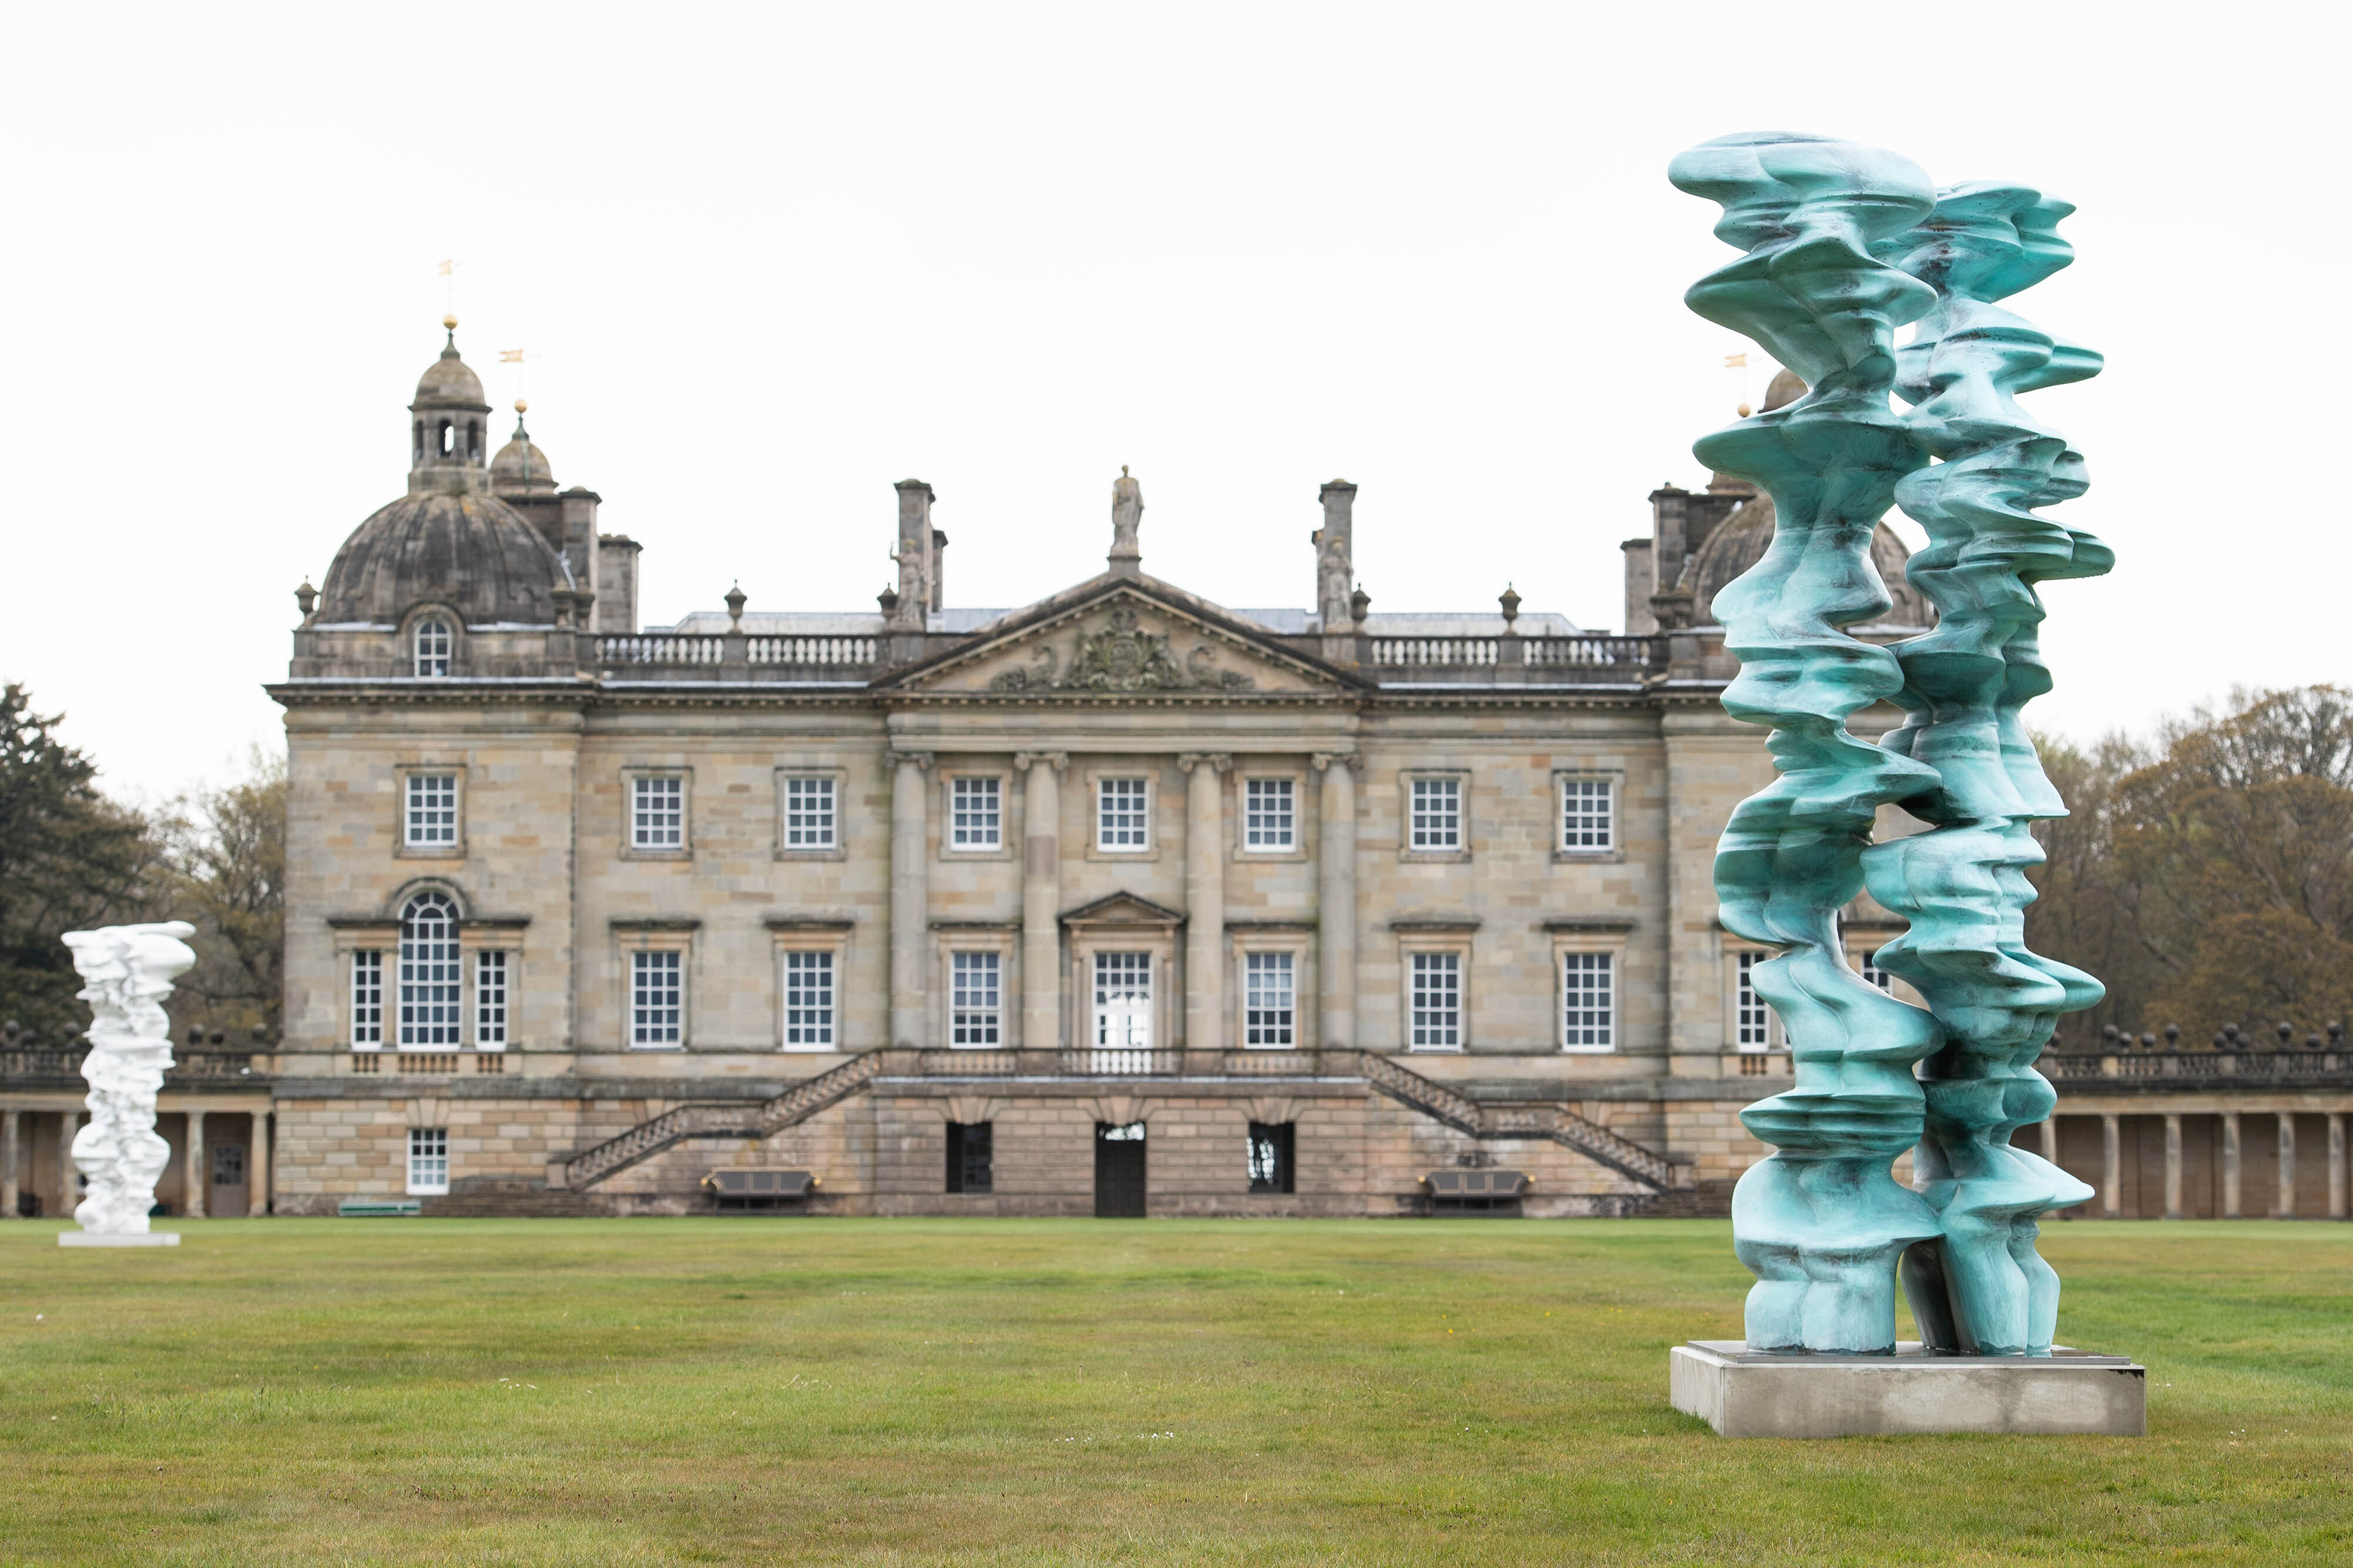 <p>EDITORIAL USE ONLY Sculptures titled 'Mean Average' and 'Runner' by Sir Tony Cragg are unveiled at Houghton Hall in Norfolk as part of a major exhibition of his work, opening to the public on May 19. Issue date: Monday May 10, 2021.</p>